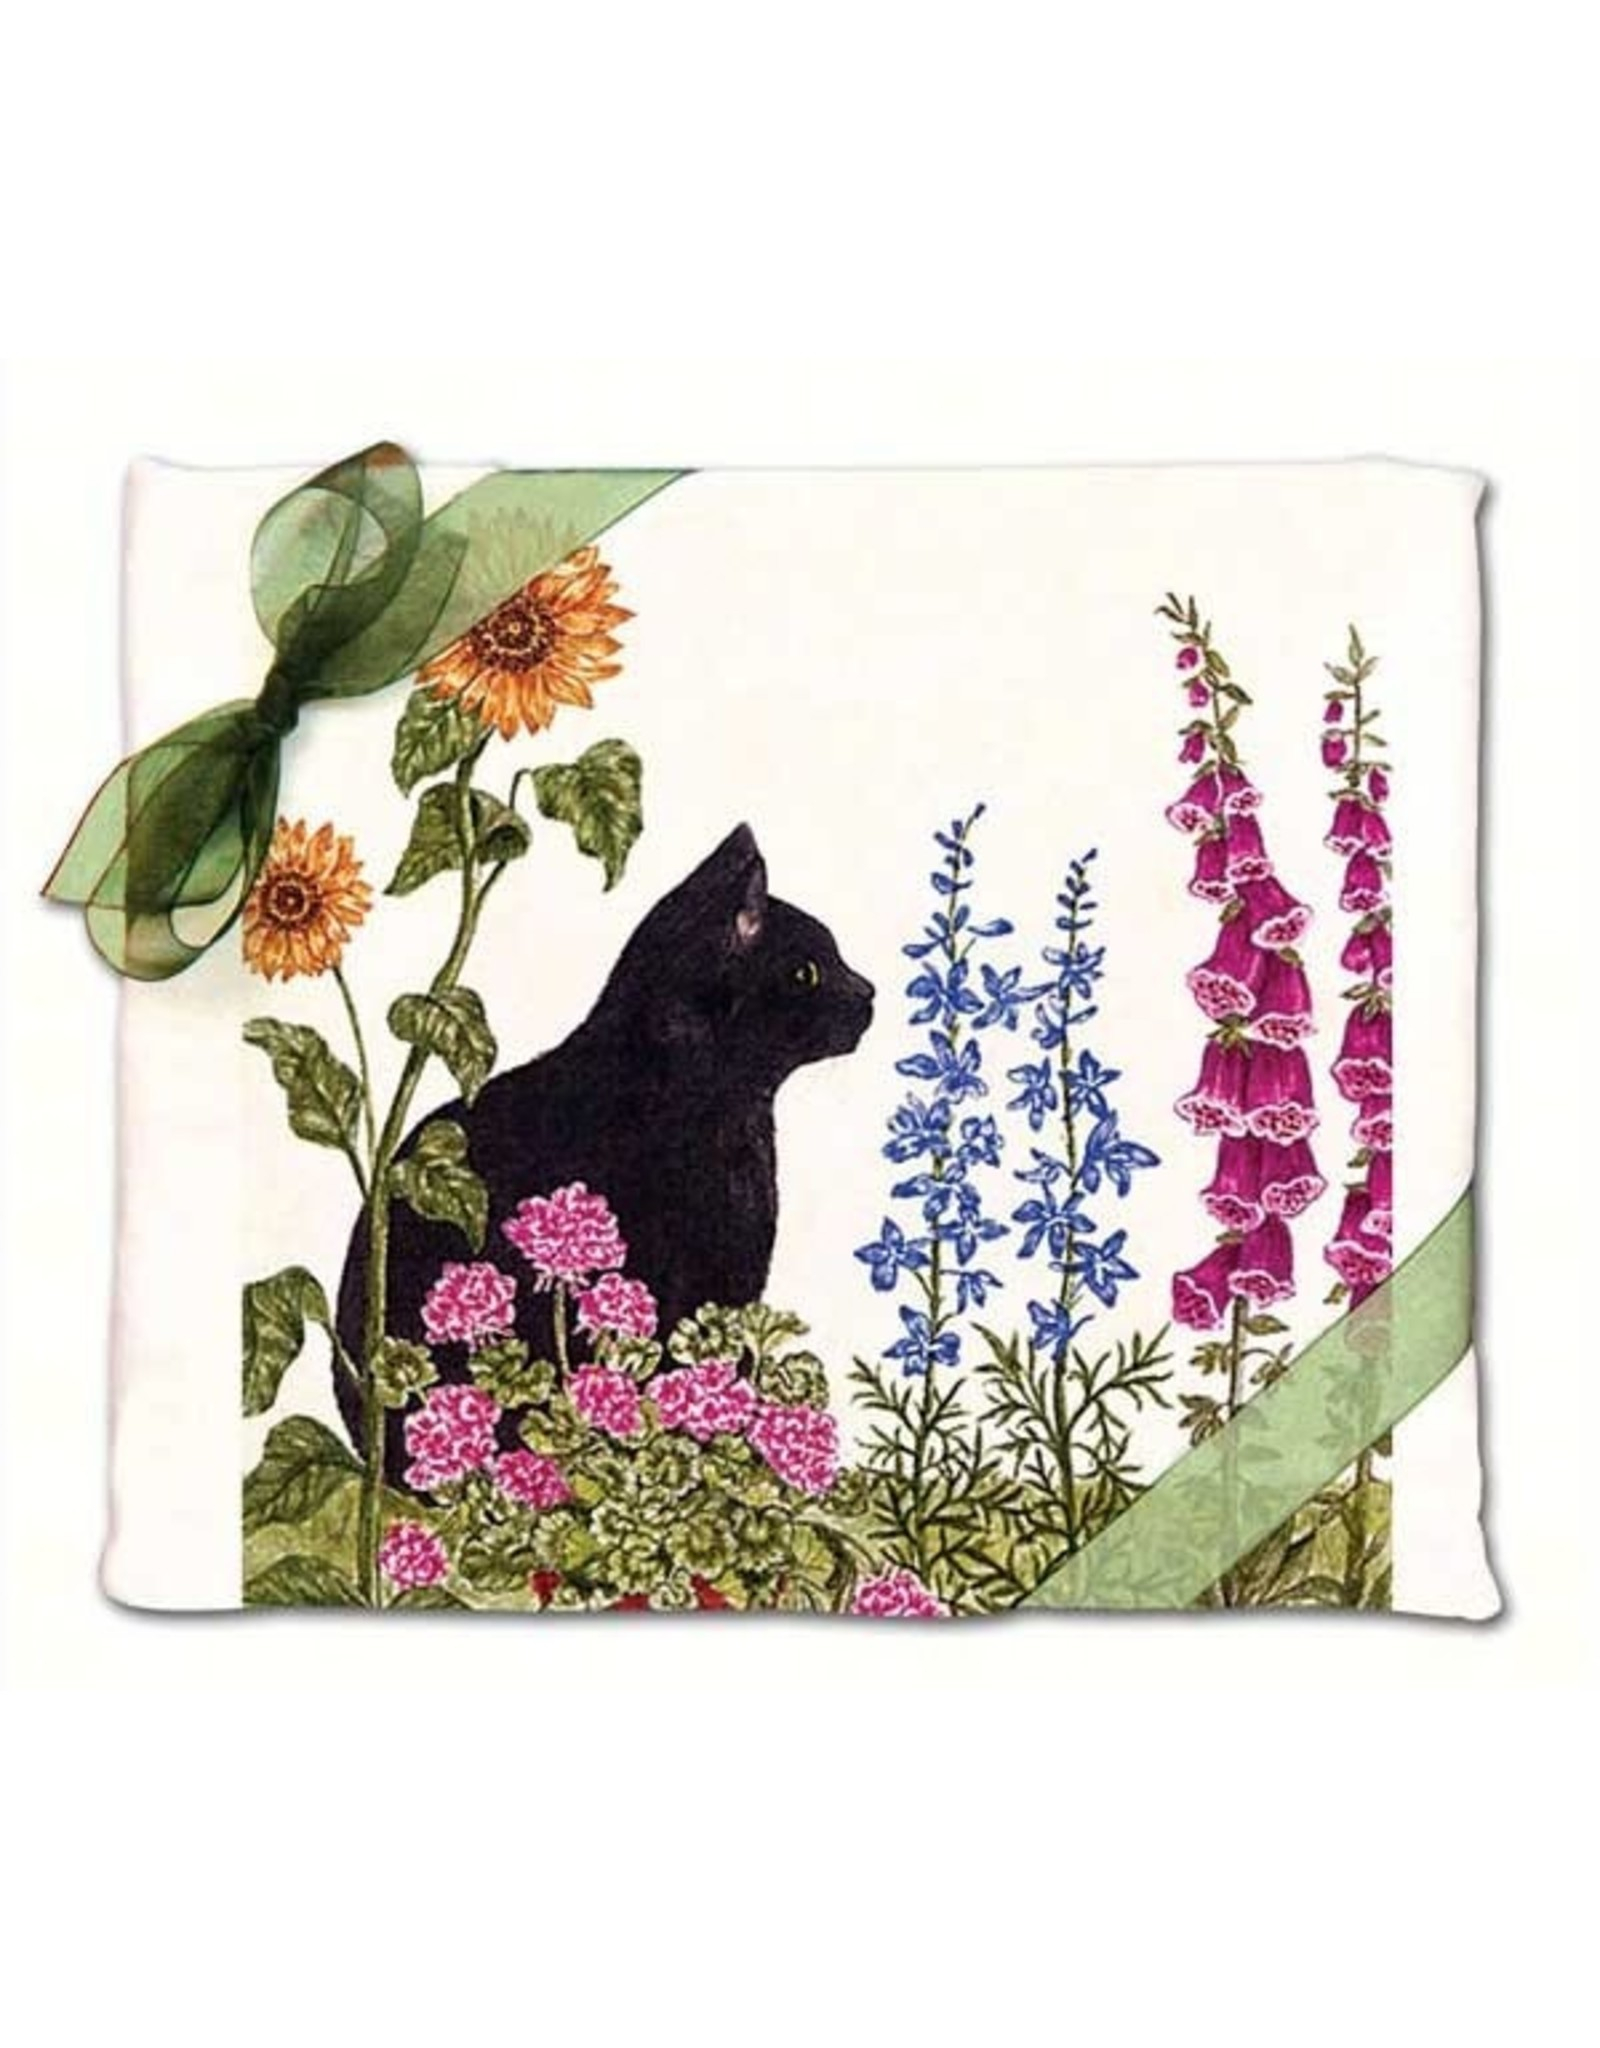 Alice's Cottage Flour Sack Towels, 2 Pack, Black Cat with Flowers, Made in USA, AC3414